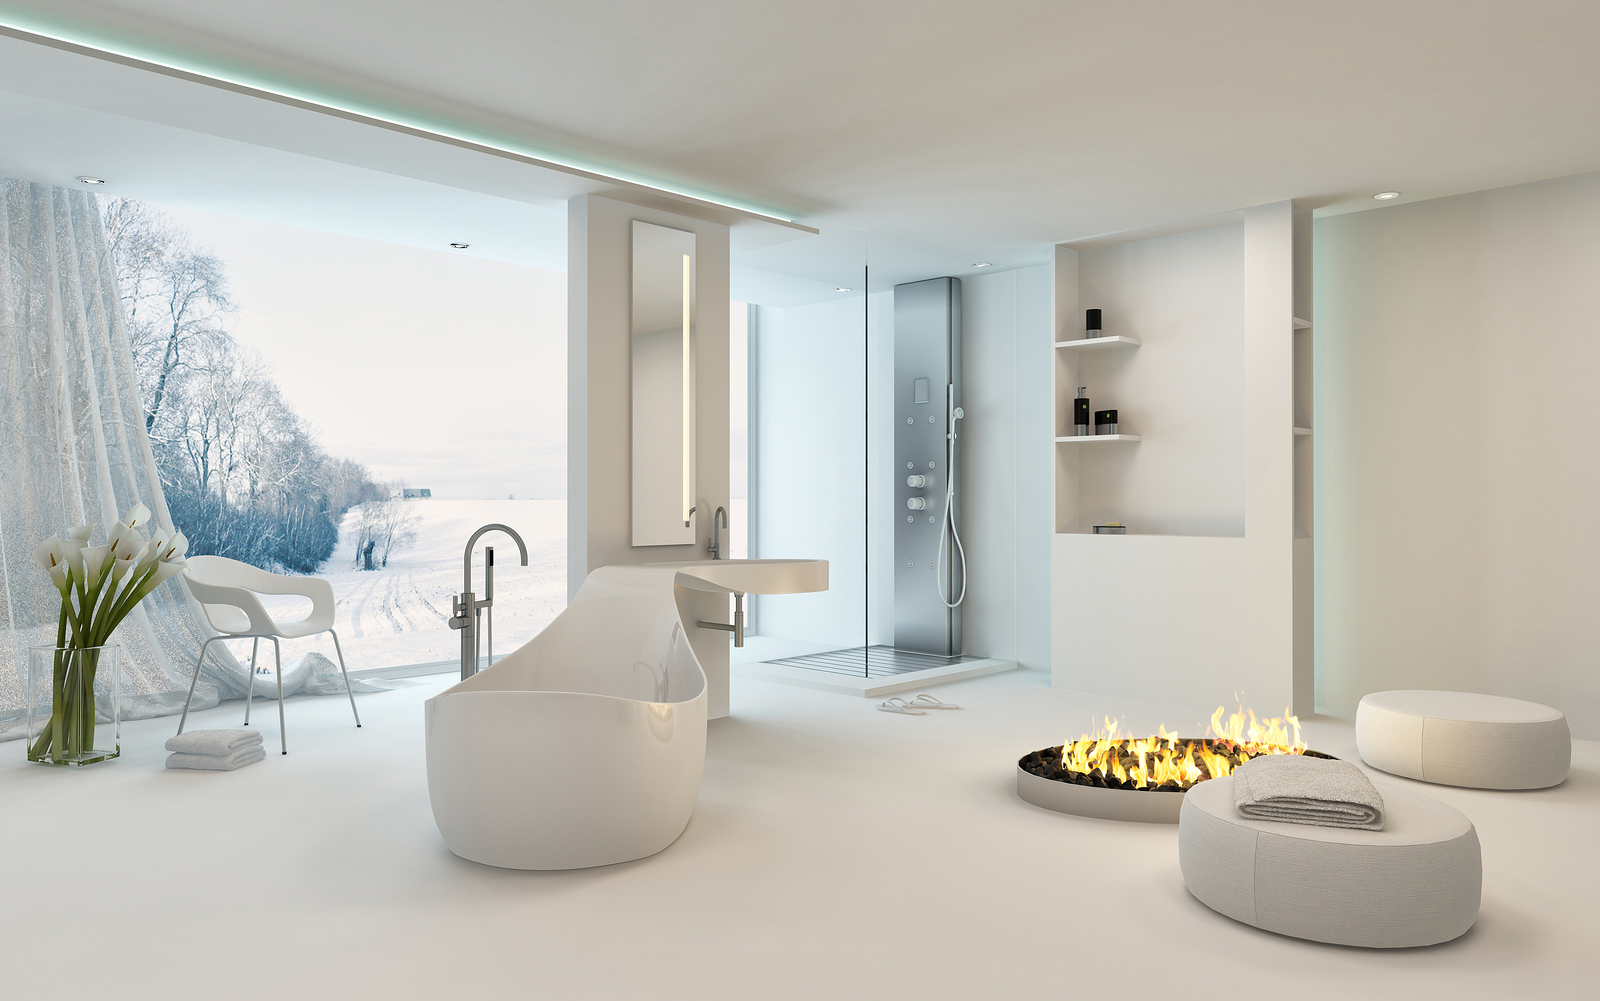 bigstock Luxury bright spacious bathroo 102995507